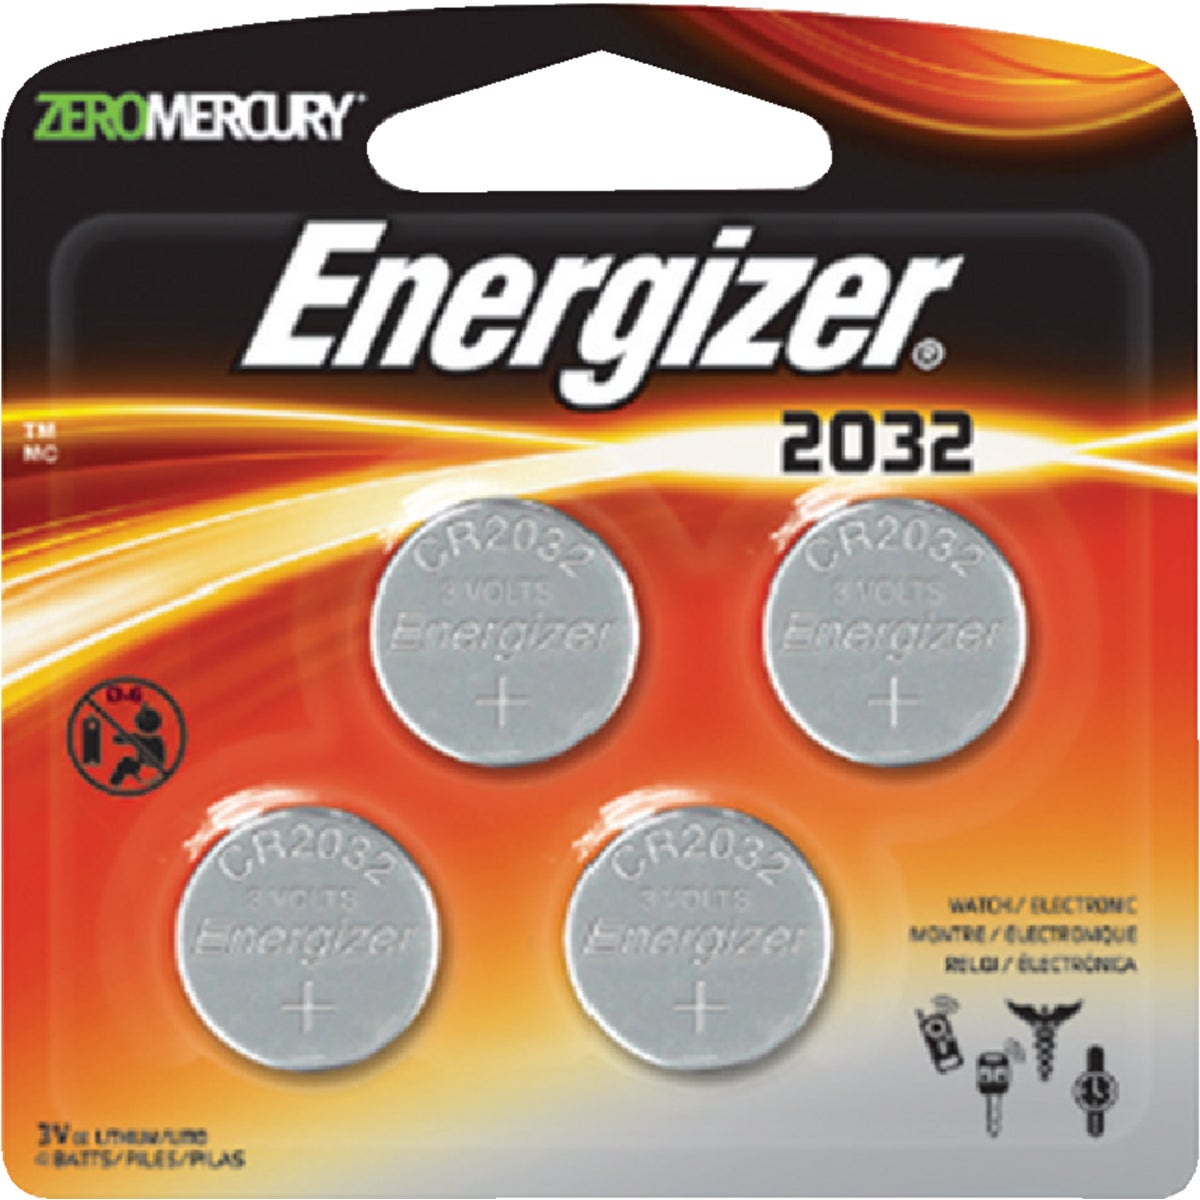 3V LITHIUM 4PK BATTERY - 2032BP-4 by Energizer